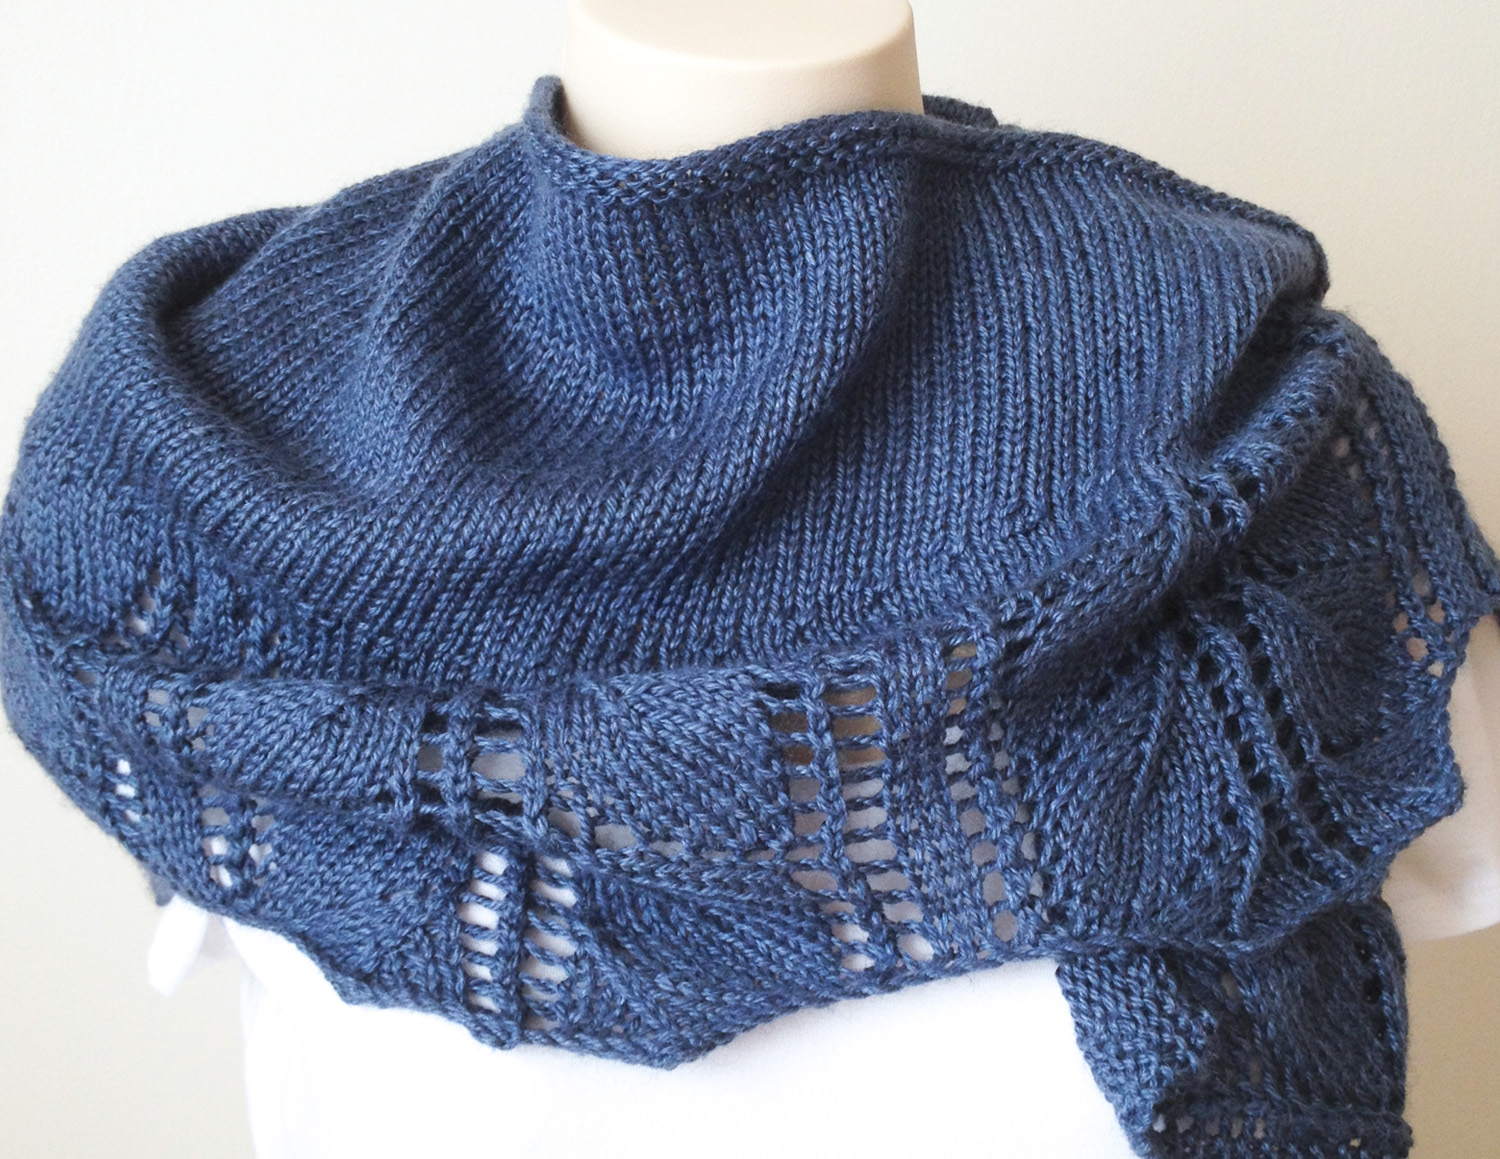 Knitting Terminology Yo : New knitting pattern leaves shawl